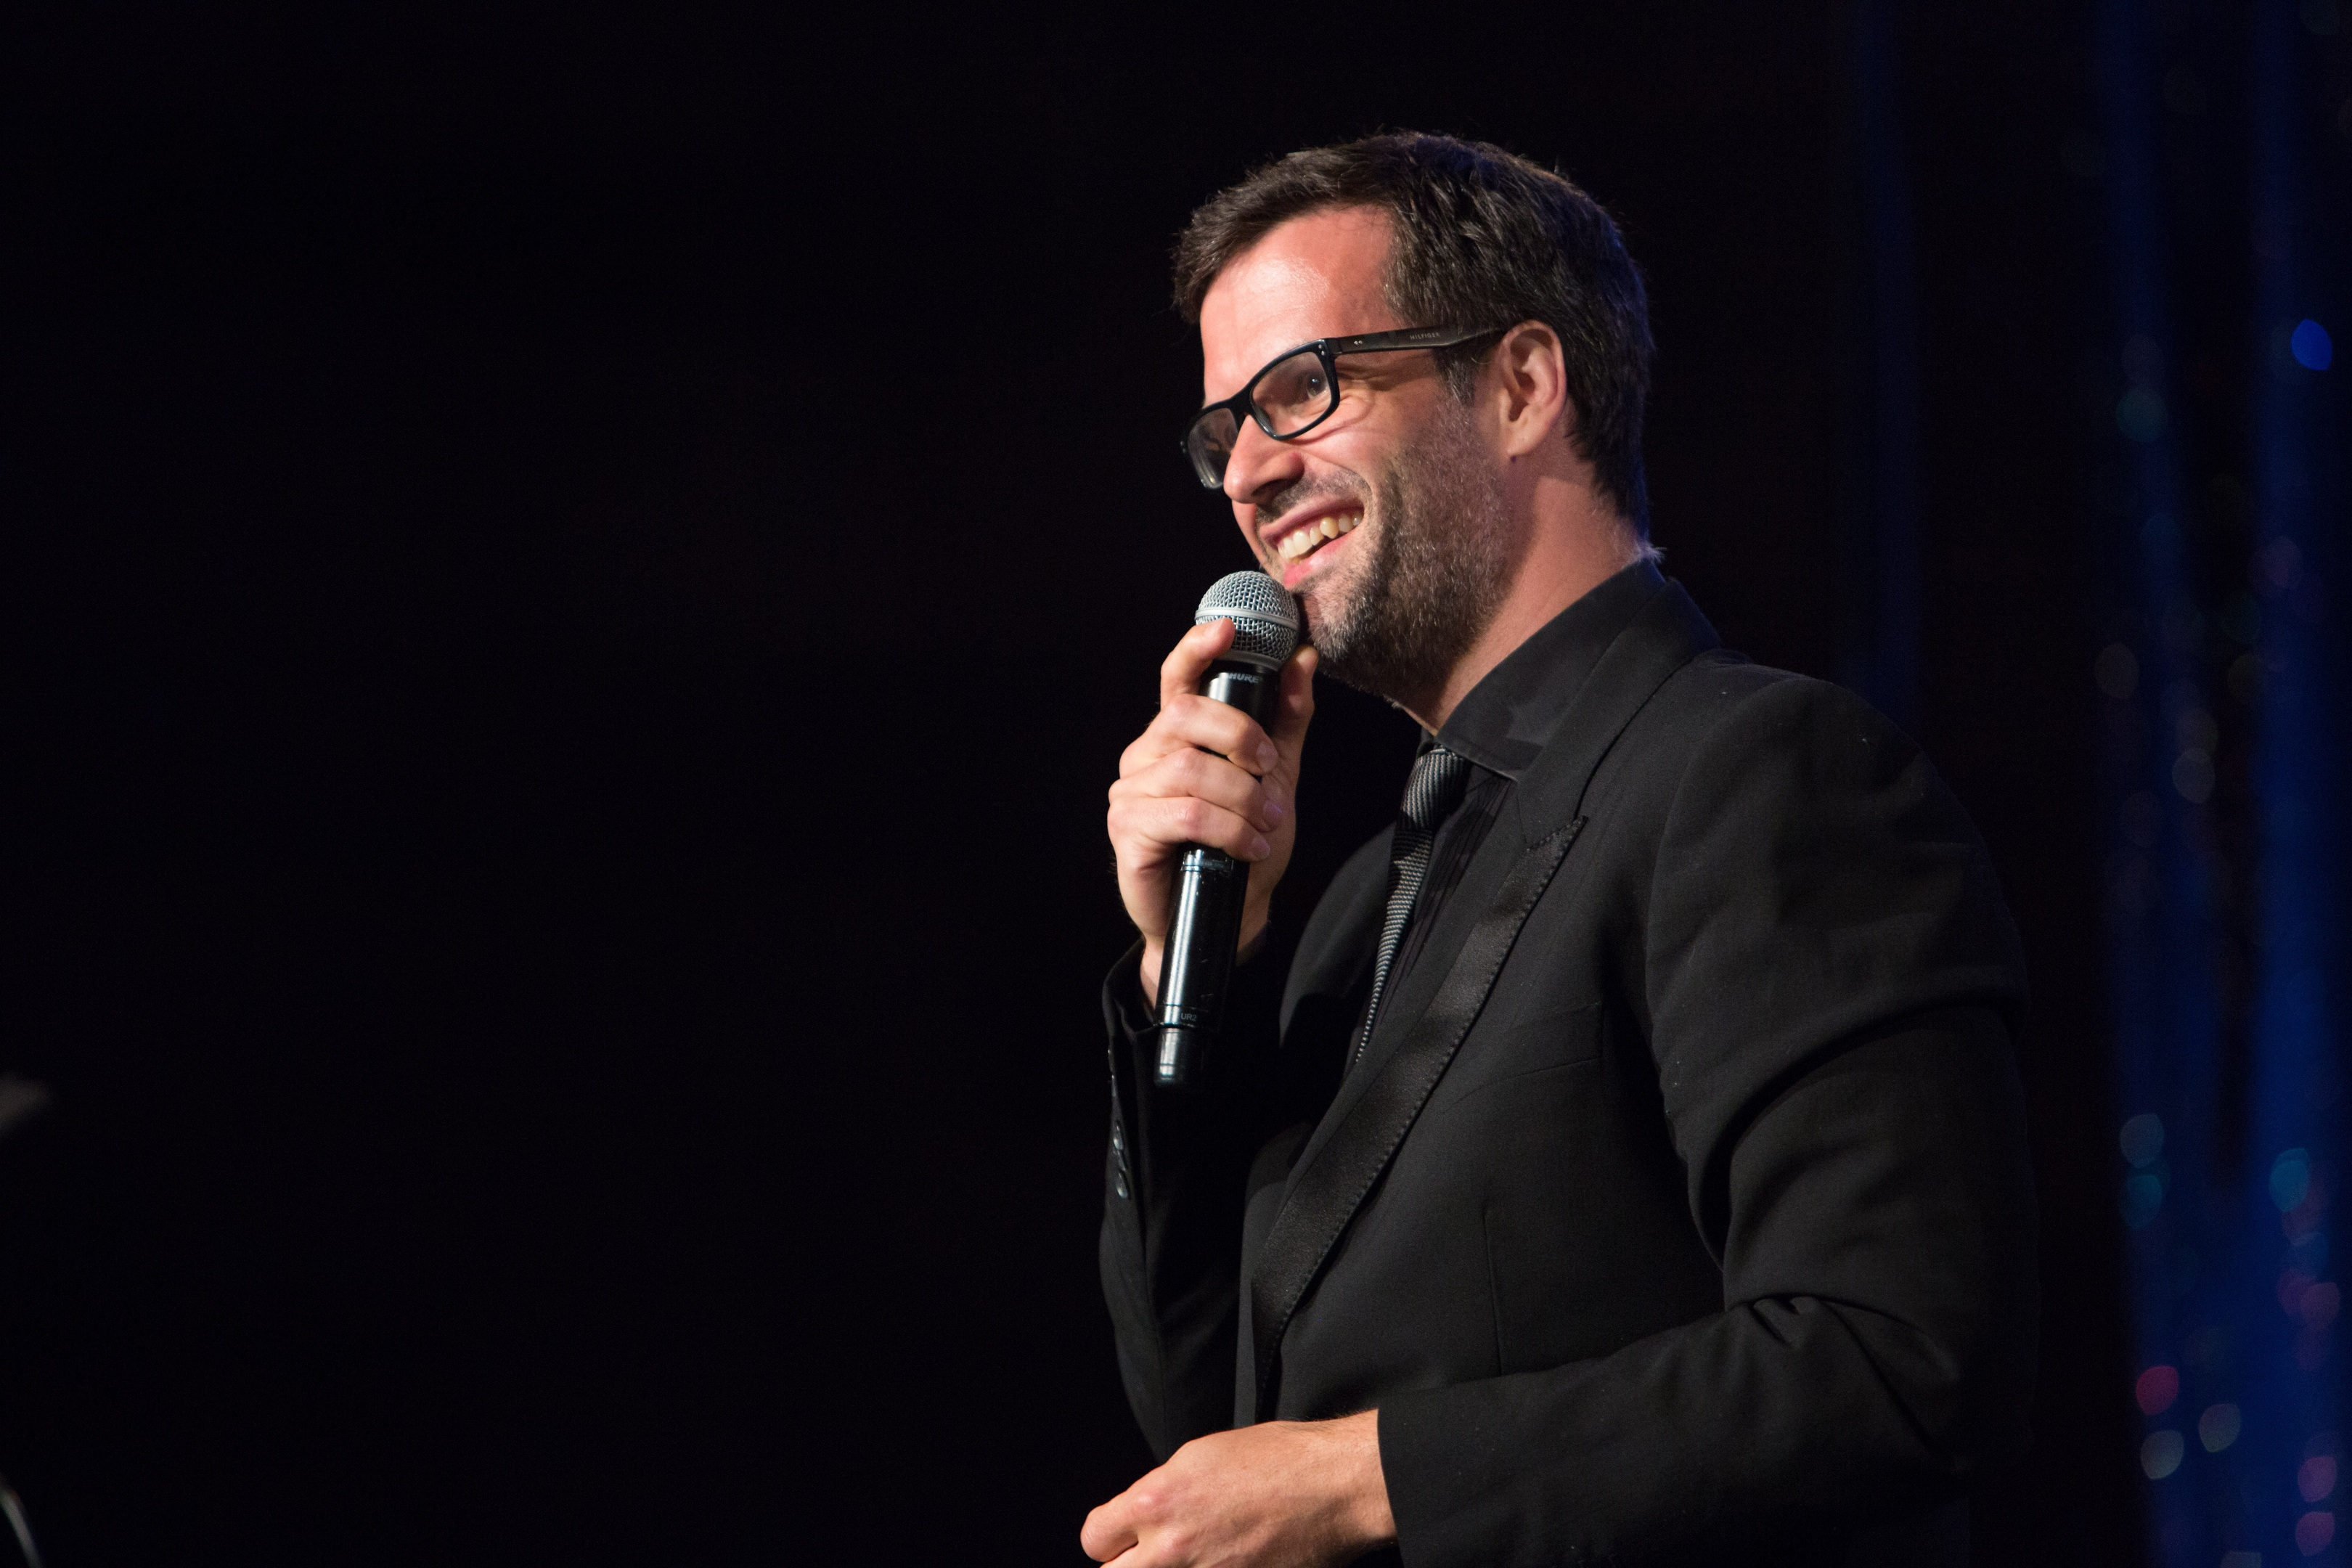 Marcus Brigstocke will host the SCDI's annual Highlands and Islands Dinner and Business Excellence Awards in Inverness in September.